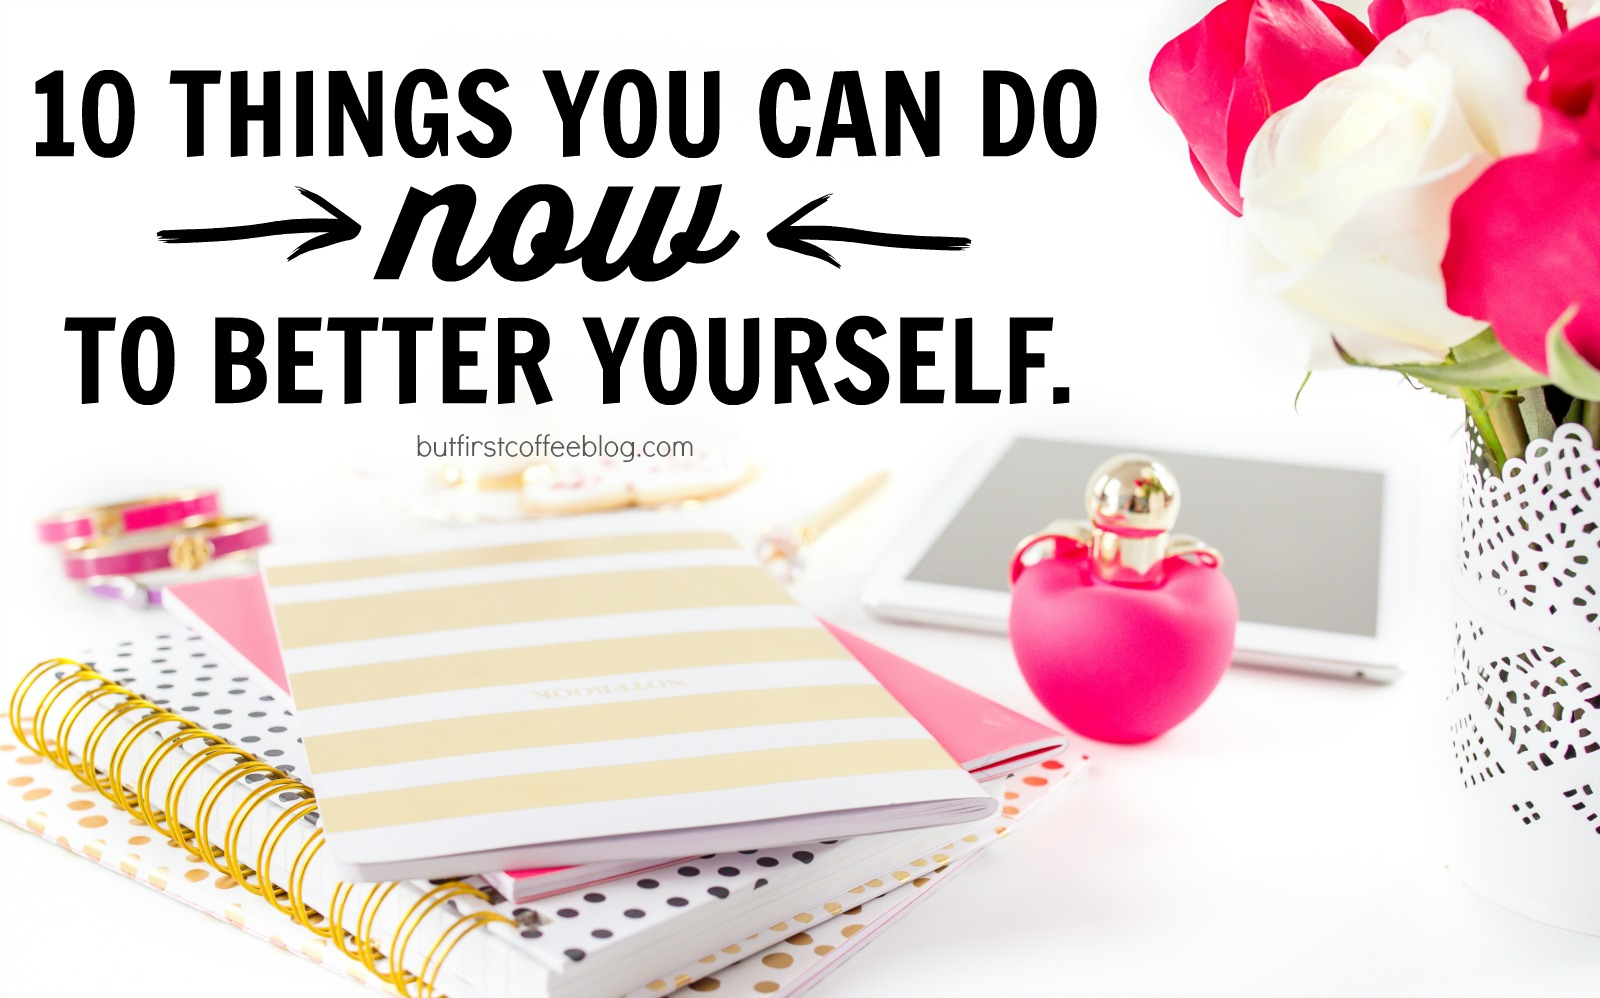 better-yourself